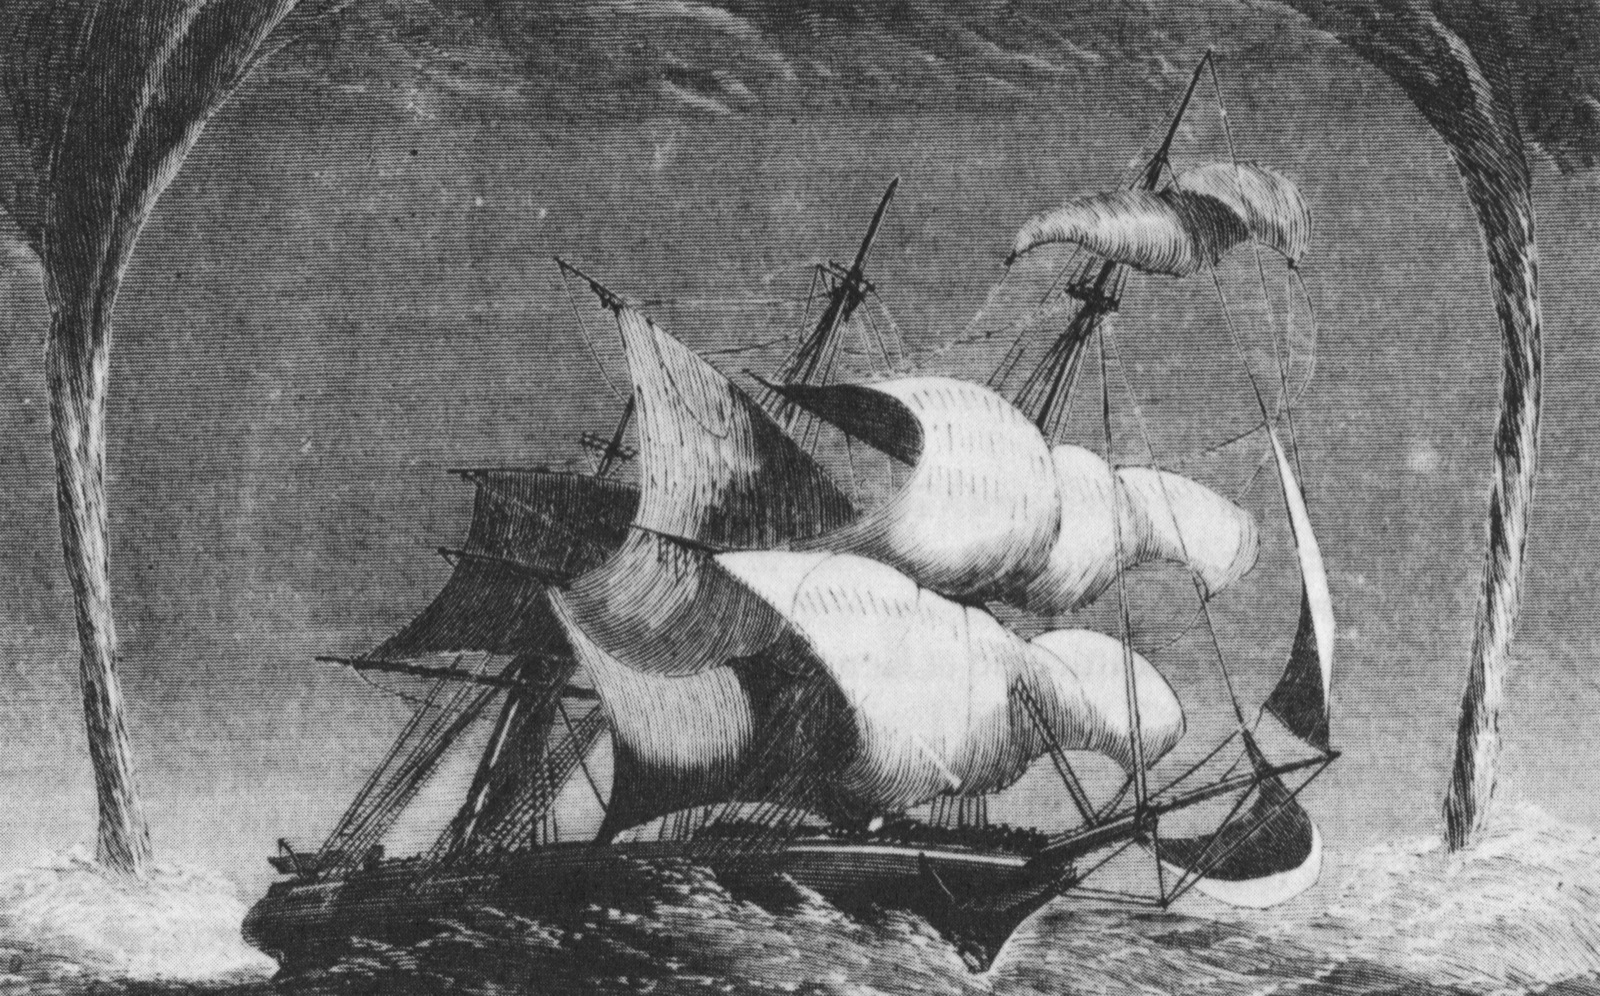 Sailor One, 1853